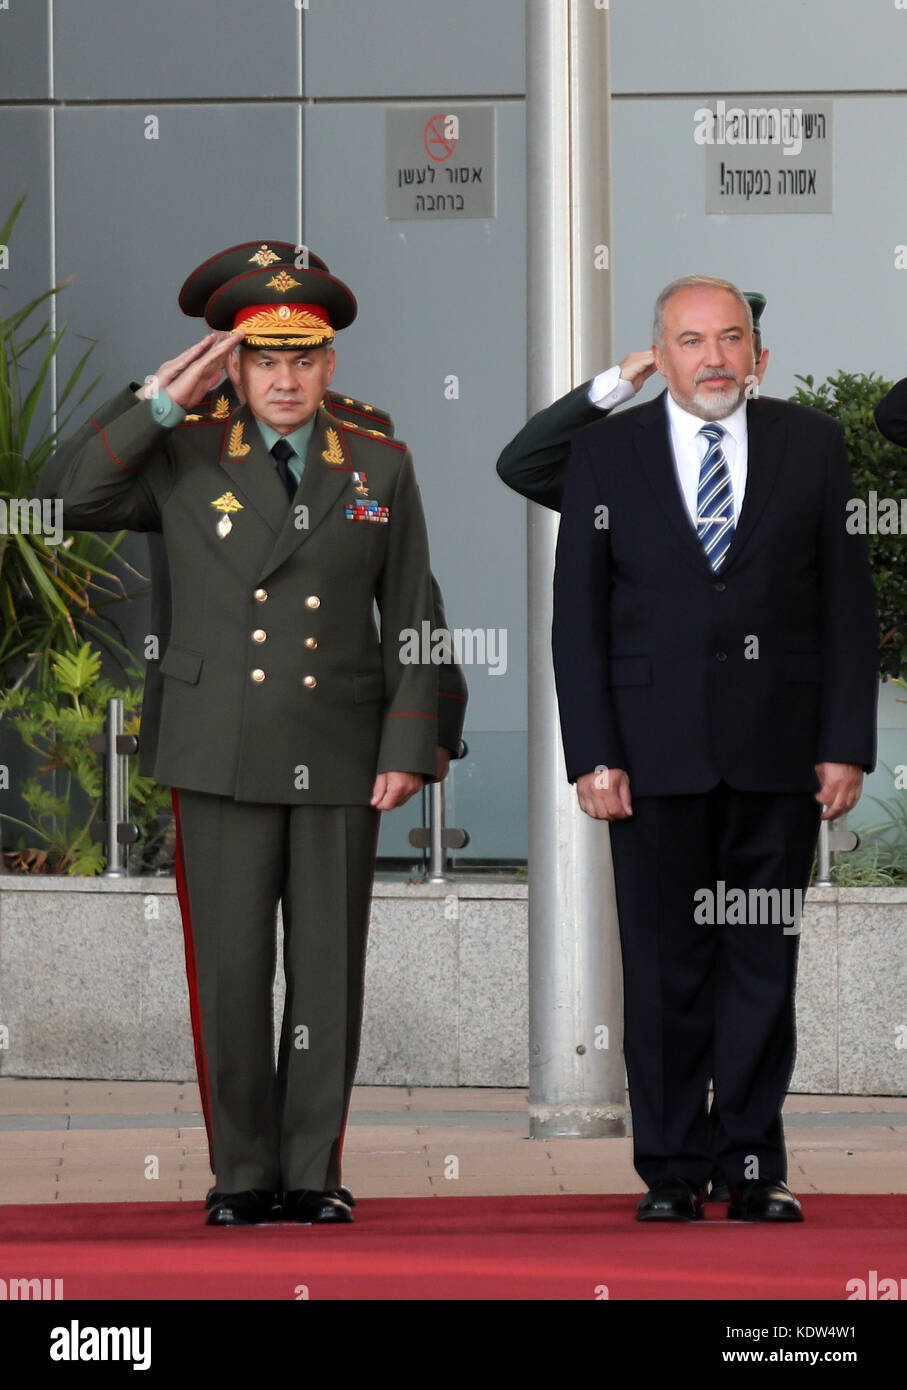 Tel Aviv, Israel. 16th Oct, 2017. Israeli Defense Minister Avigdor Lieberman (R) welcomes his Russian counterpart - Stock Image